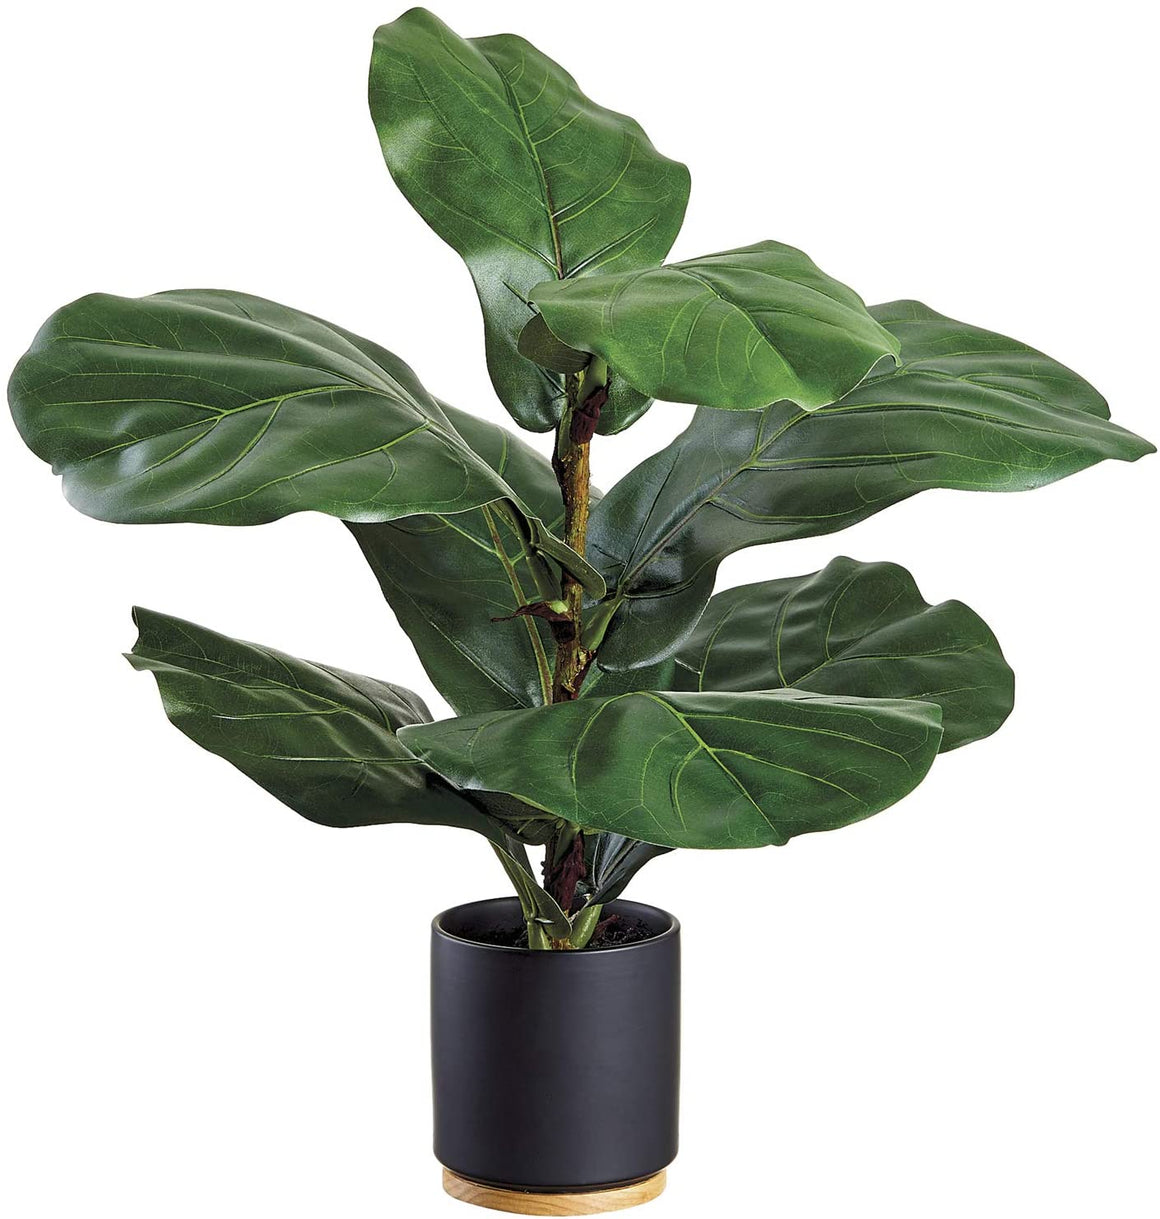 20 Inch Artificial Fiddle Leaf Plant in Black Ceramic and Wood Pot, Green Faux Broad Leaf Houseplant